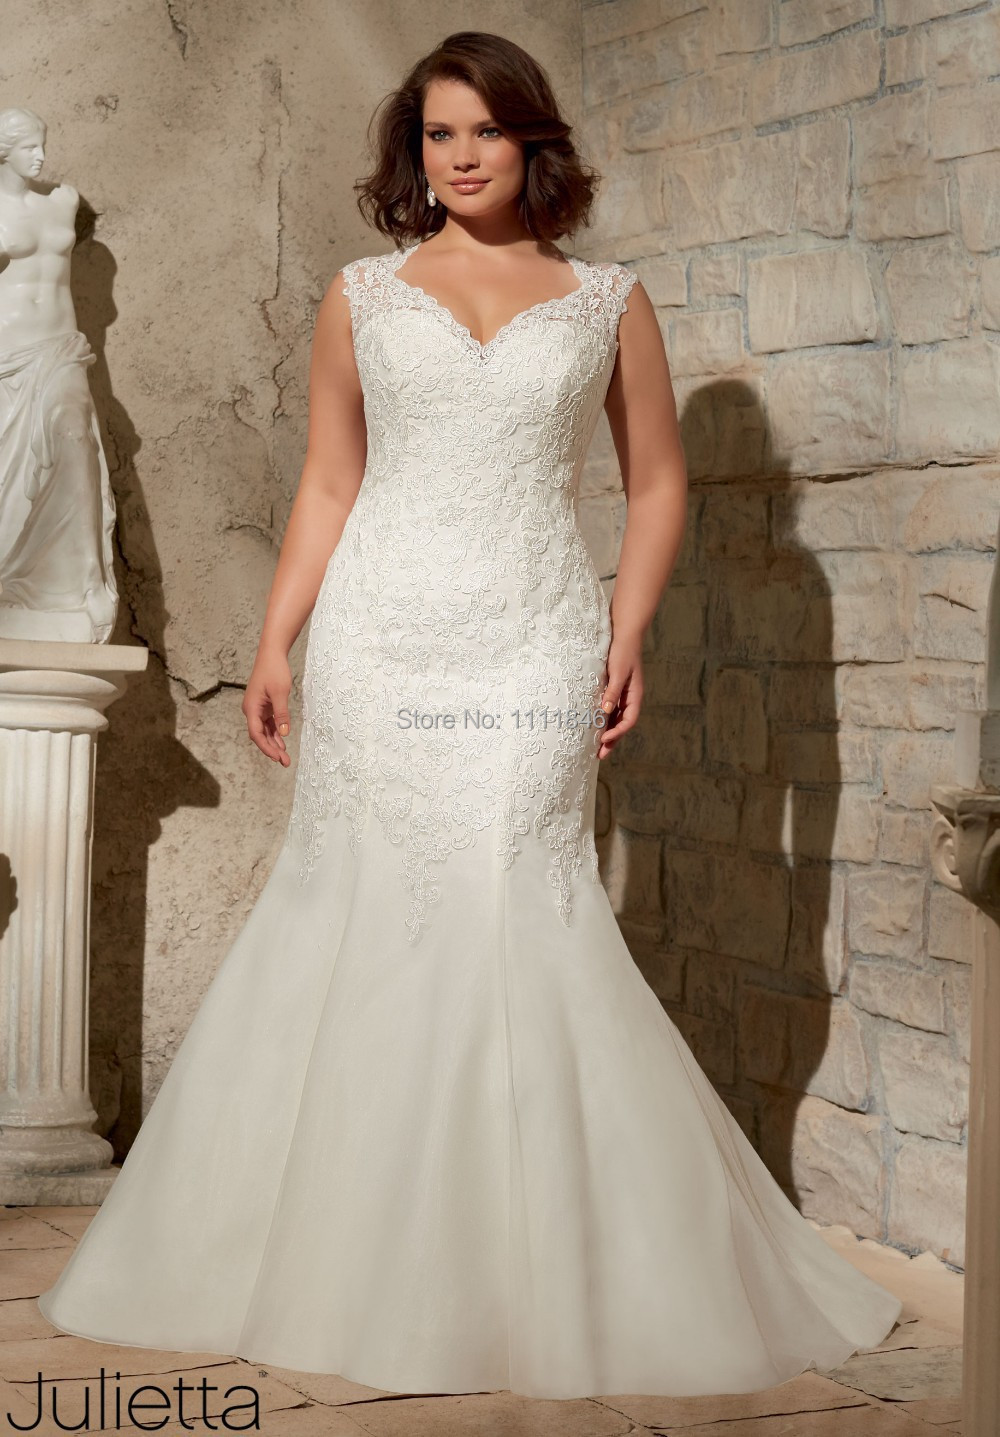 2015 vestido de noiva plus size mermaid wedding gown lace for Plus size lace wedding dresses with sleeves